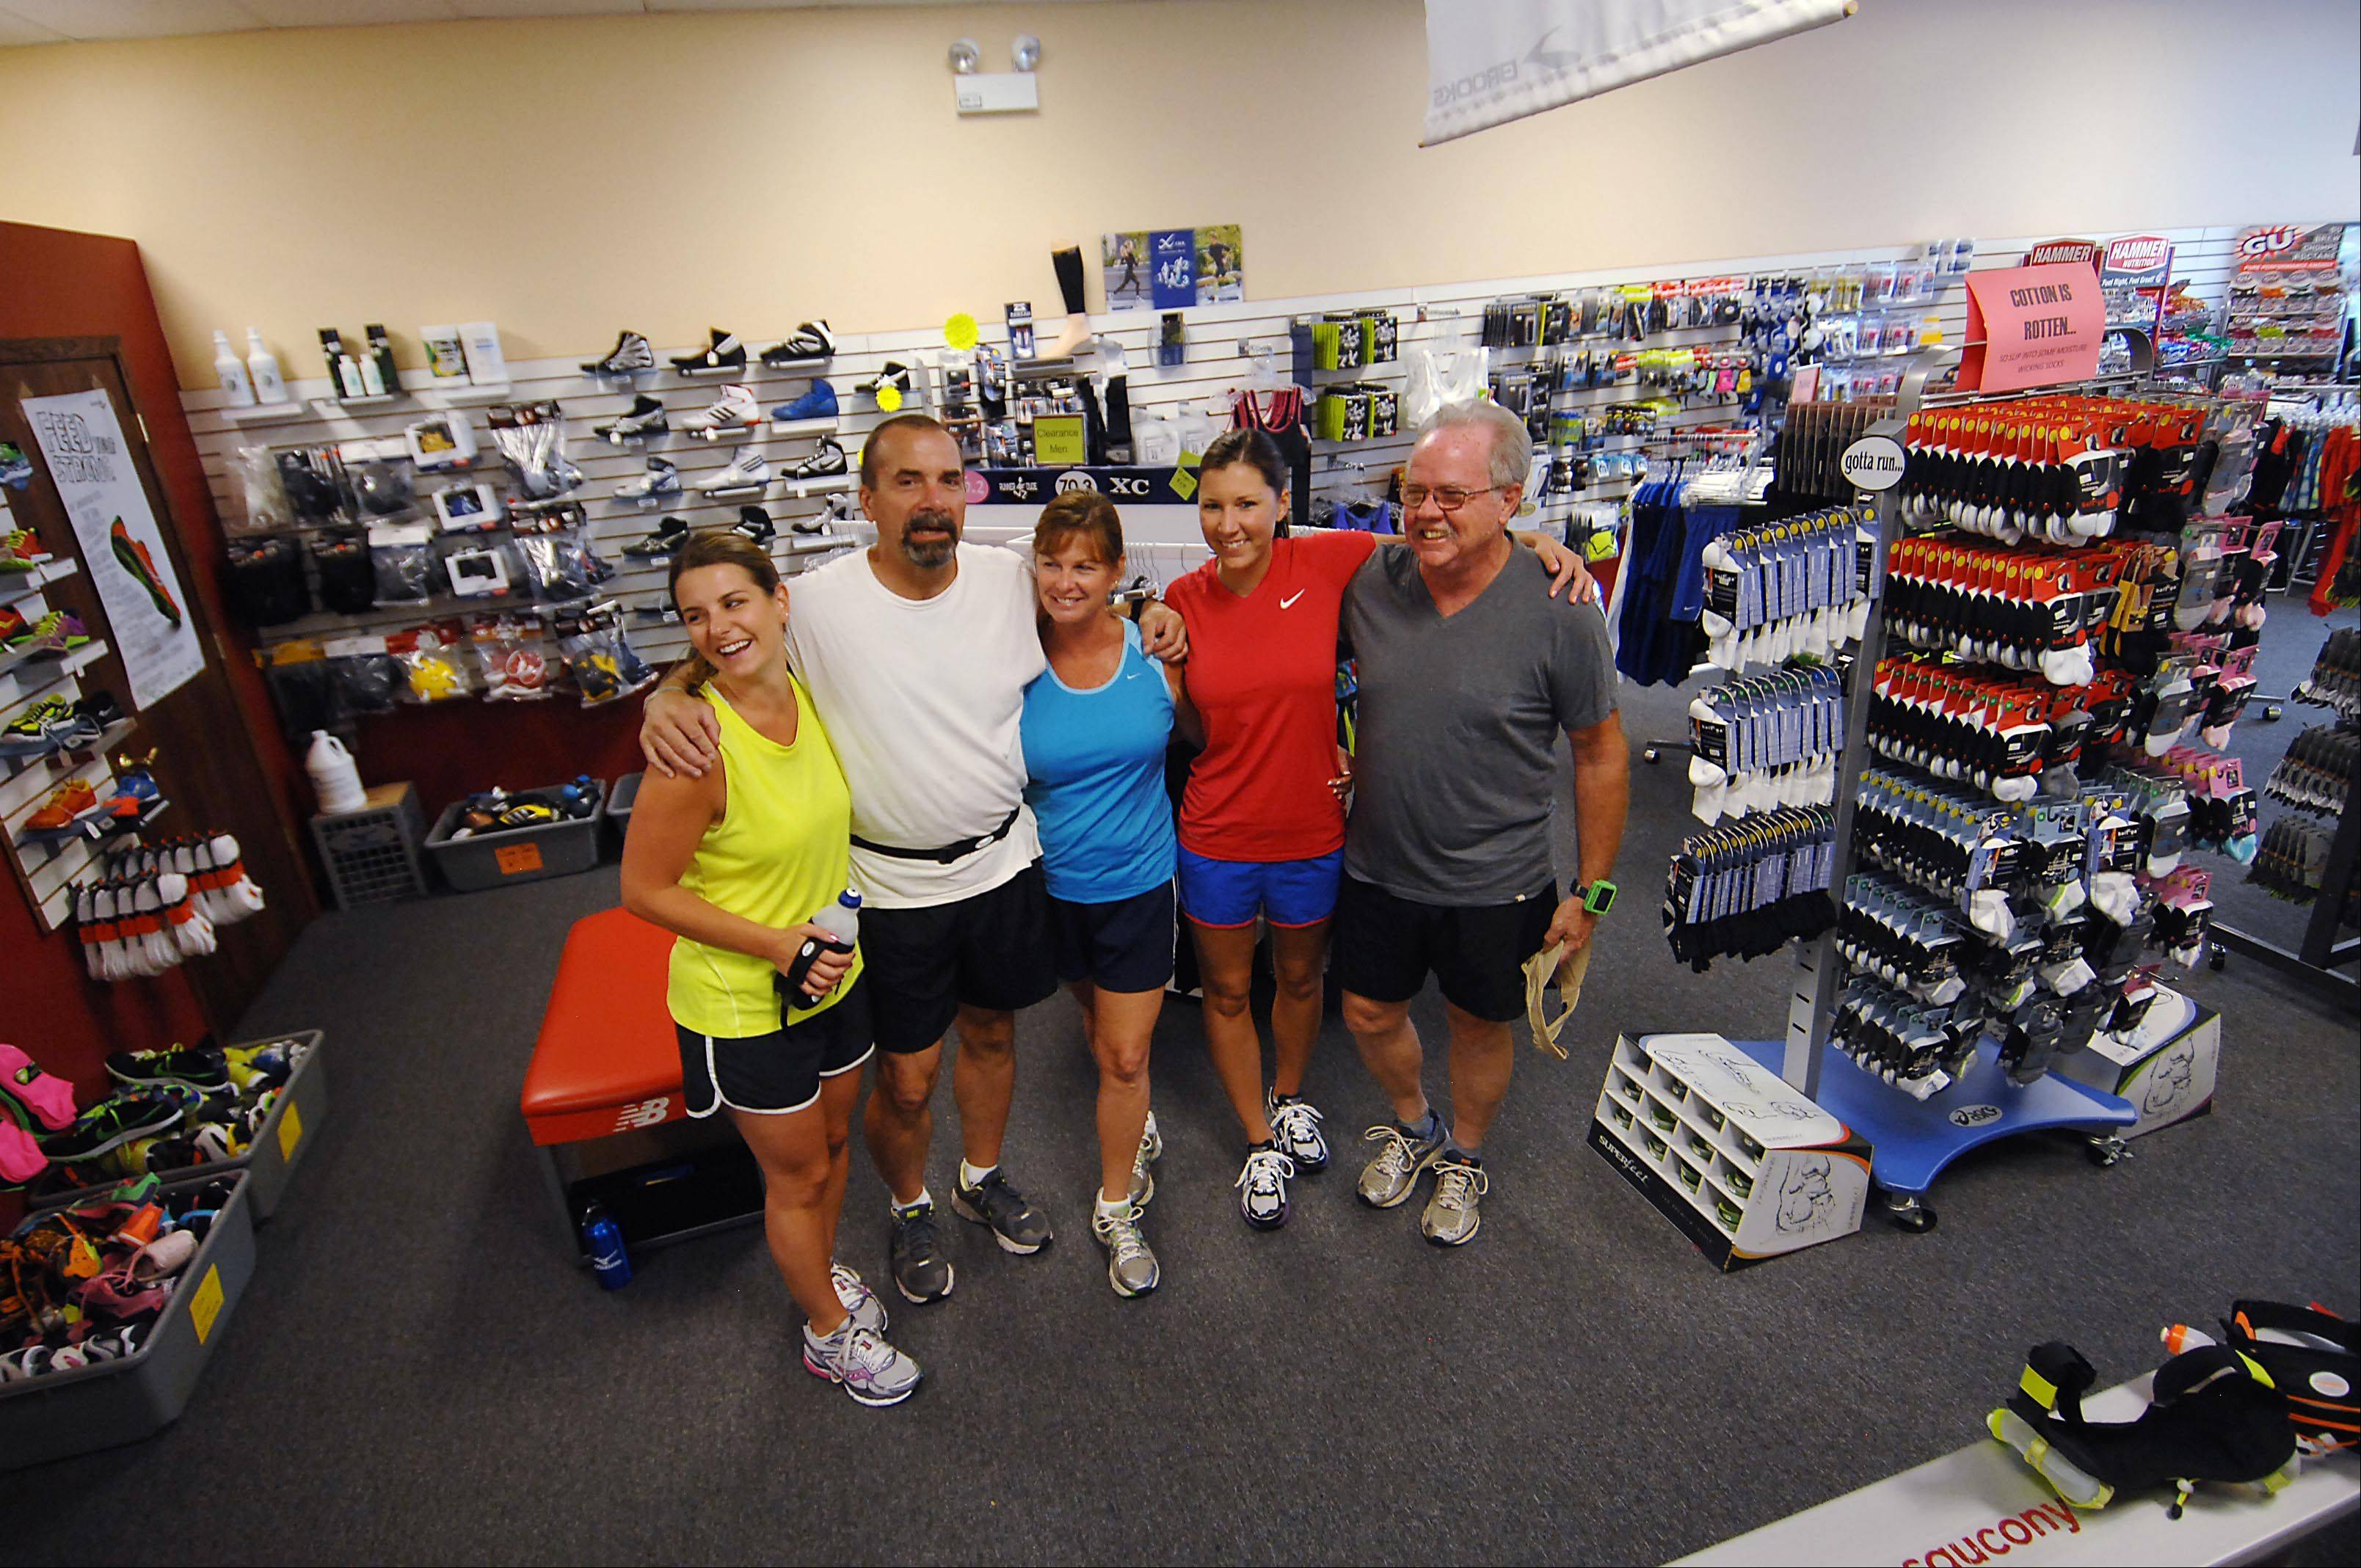 The Shlub Club, a group of runners that meets at Dick Pond Athletics in Carpentersville, takes part in the Walk 2 Run program. From left are Carolyn Chesta, Paul Turnbaugh, Donna Hayes, Nicole Kotelman and Joe Maney.